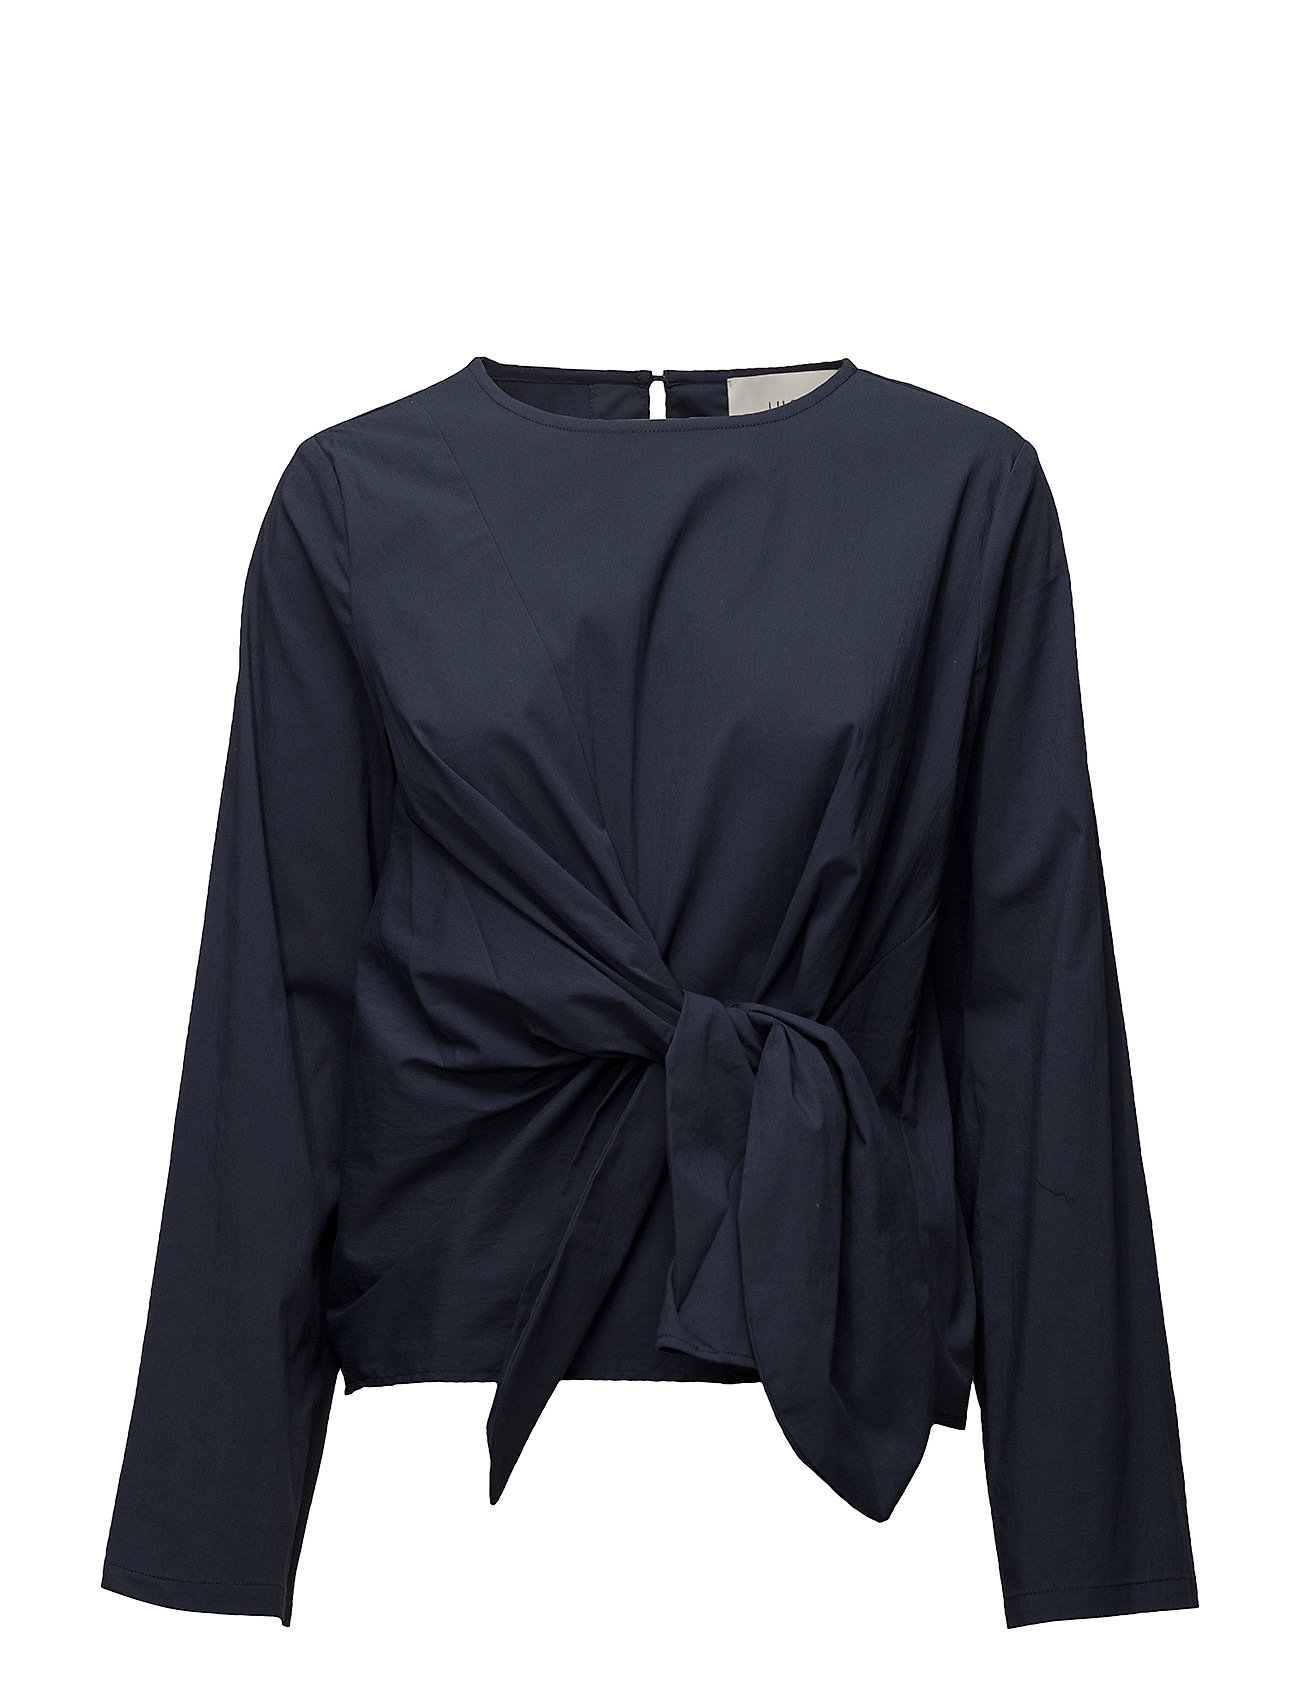 Image of Ady Ls Blouse (2872127621)